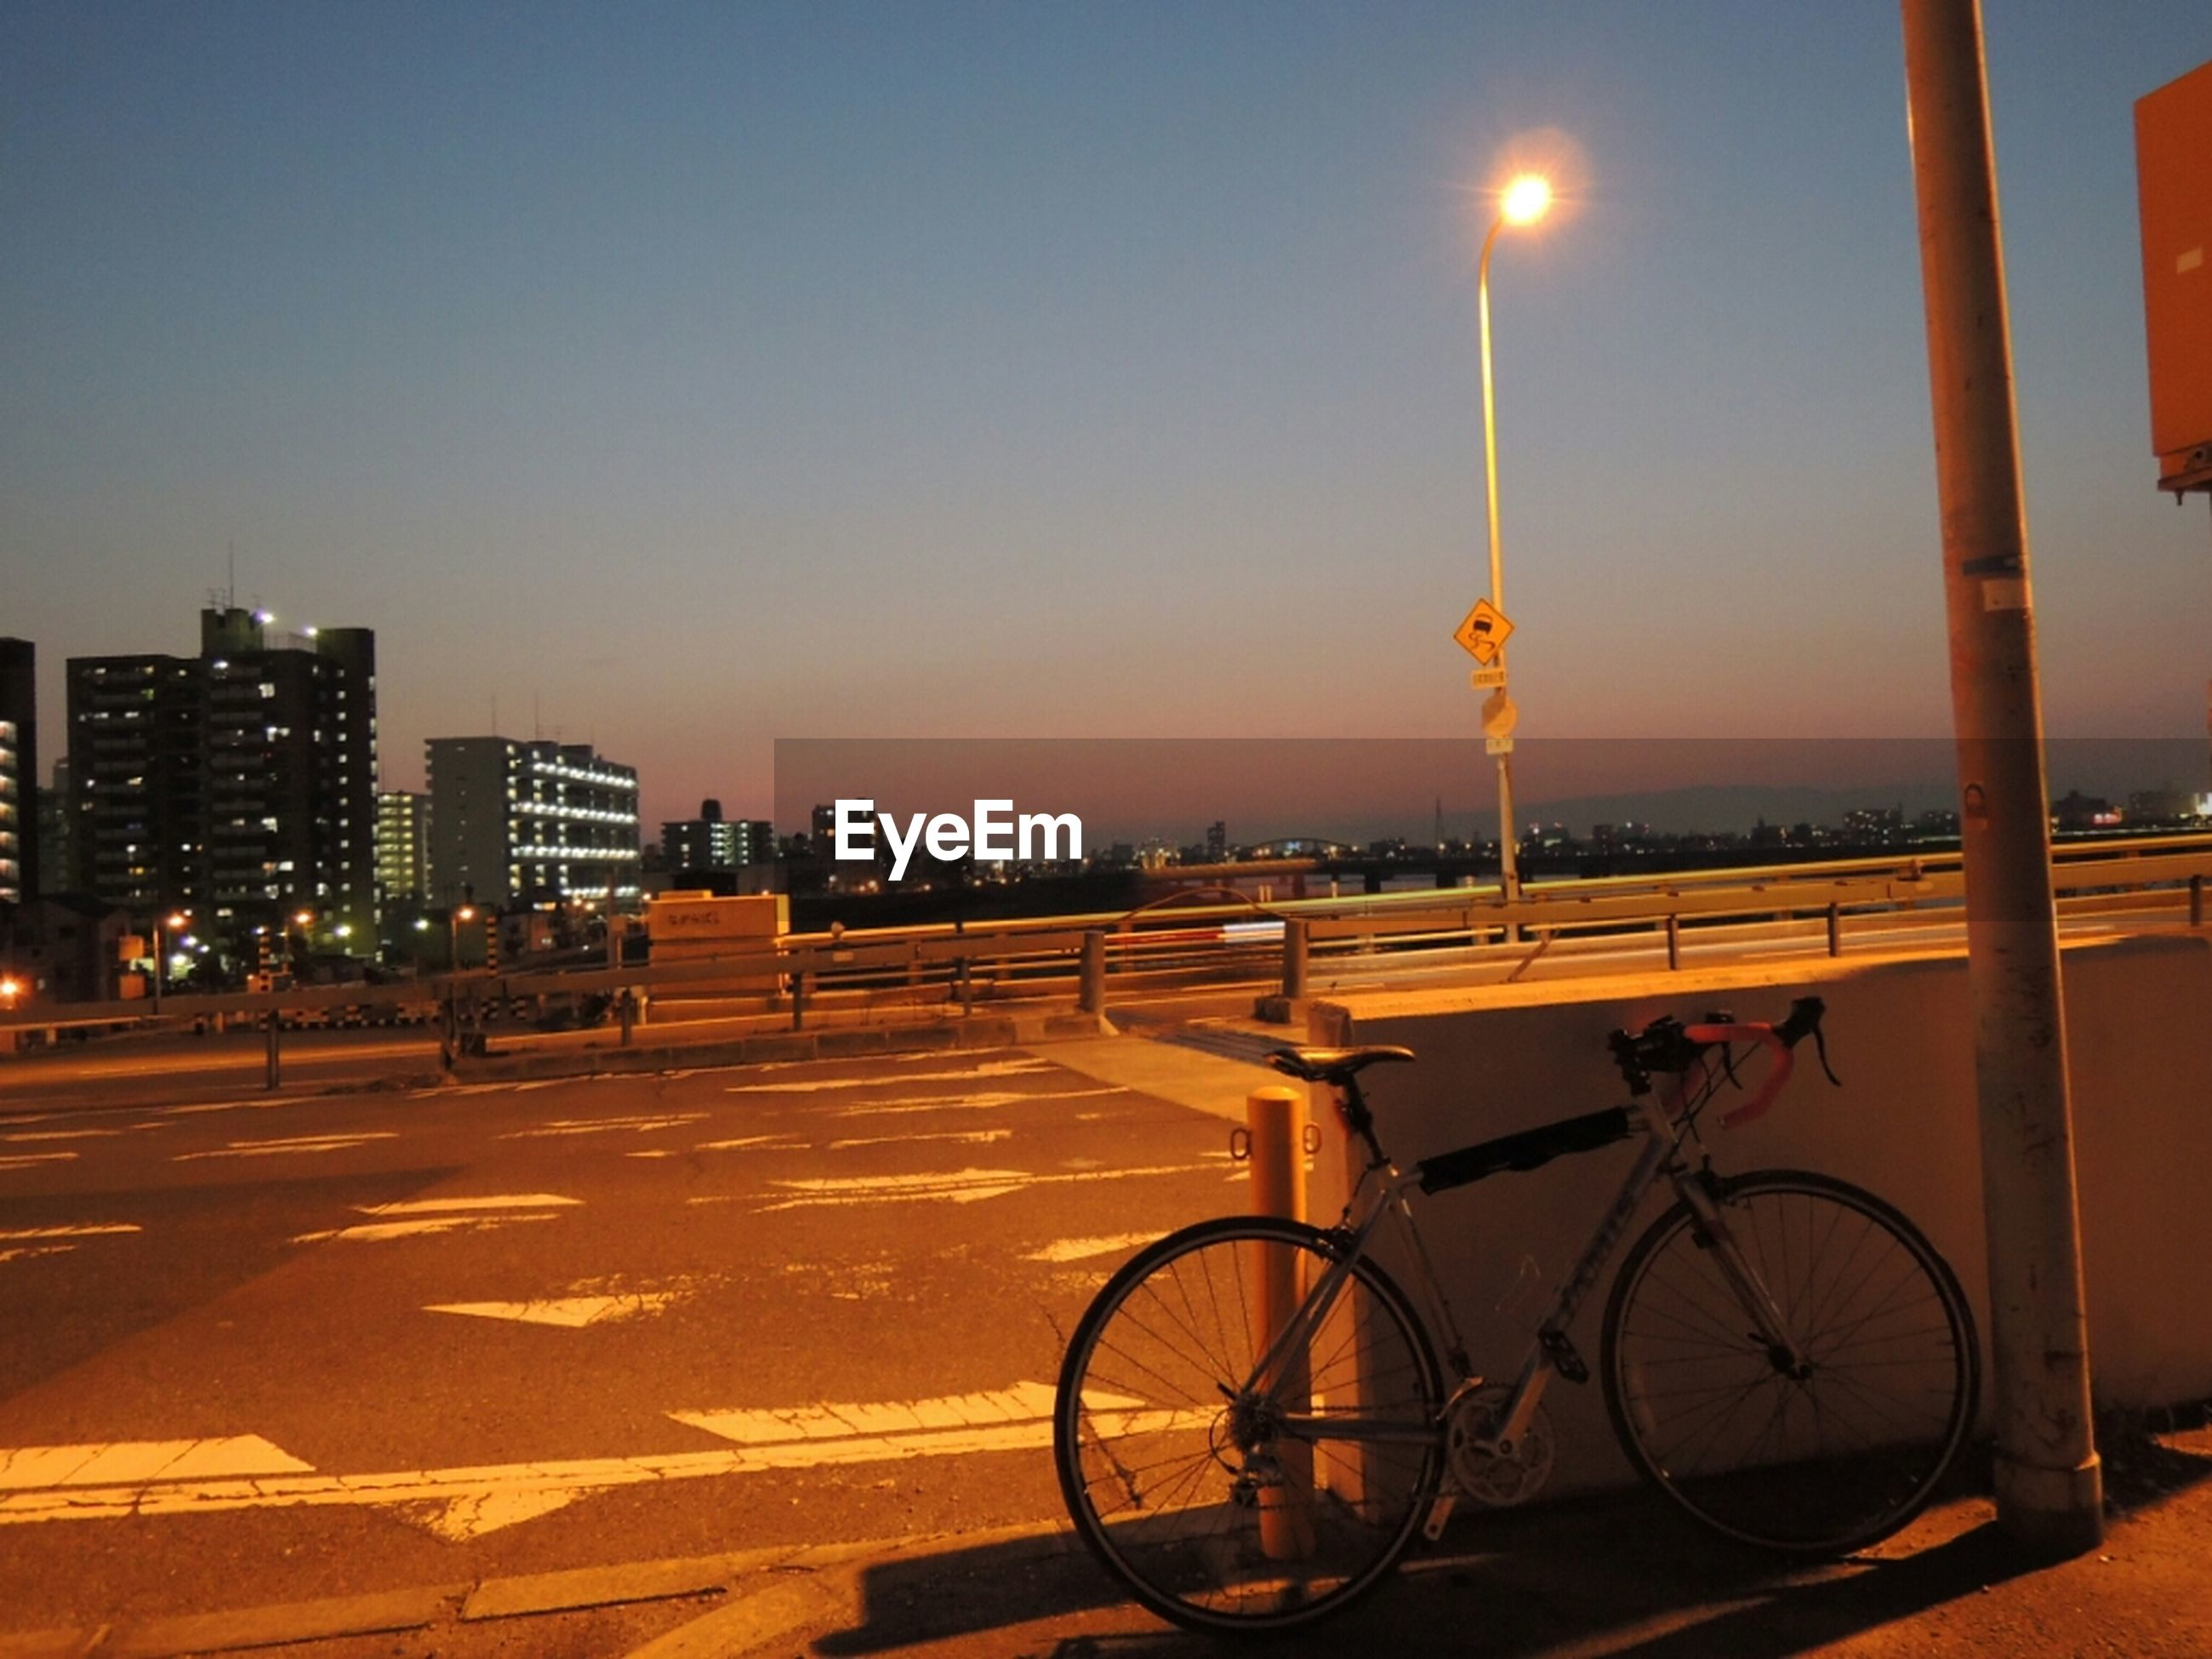 bicycle, street light, transportation, illuminated, architecture, built structure, building exterior, clear sky, street, land vehicle, mode of transport, sunset, city, lighting equipment, copy space, stationary, parking, parked, night, sky